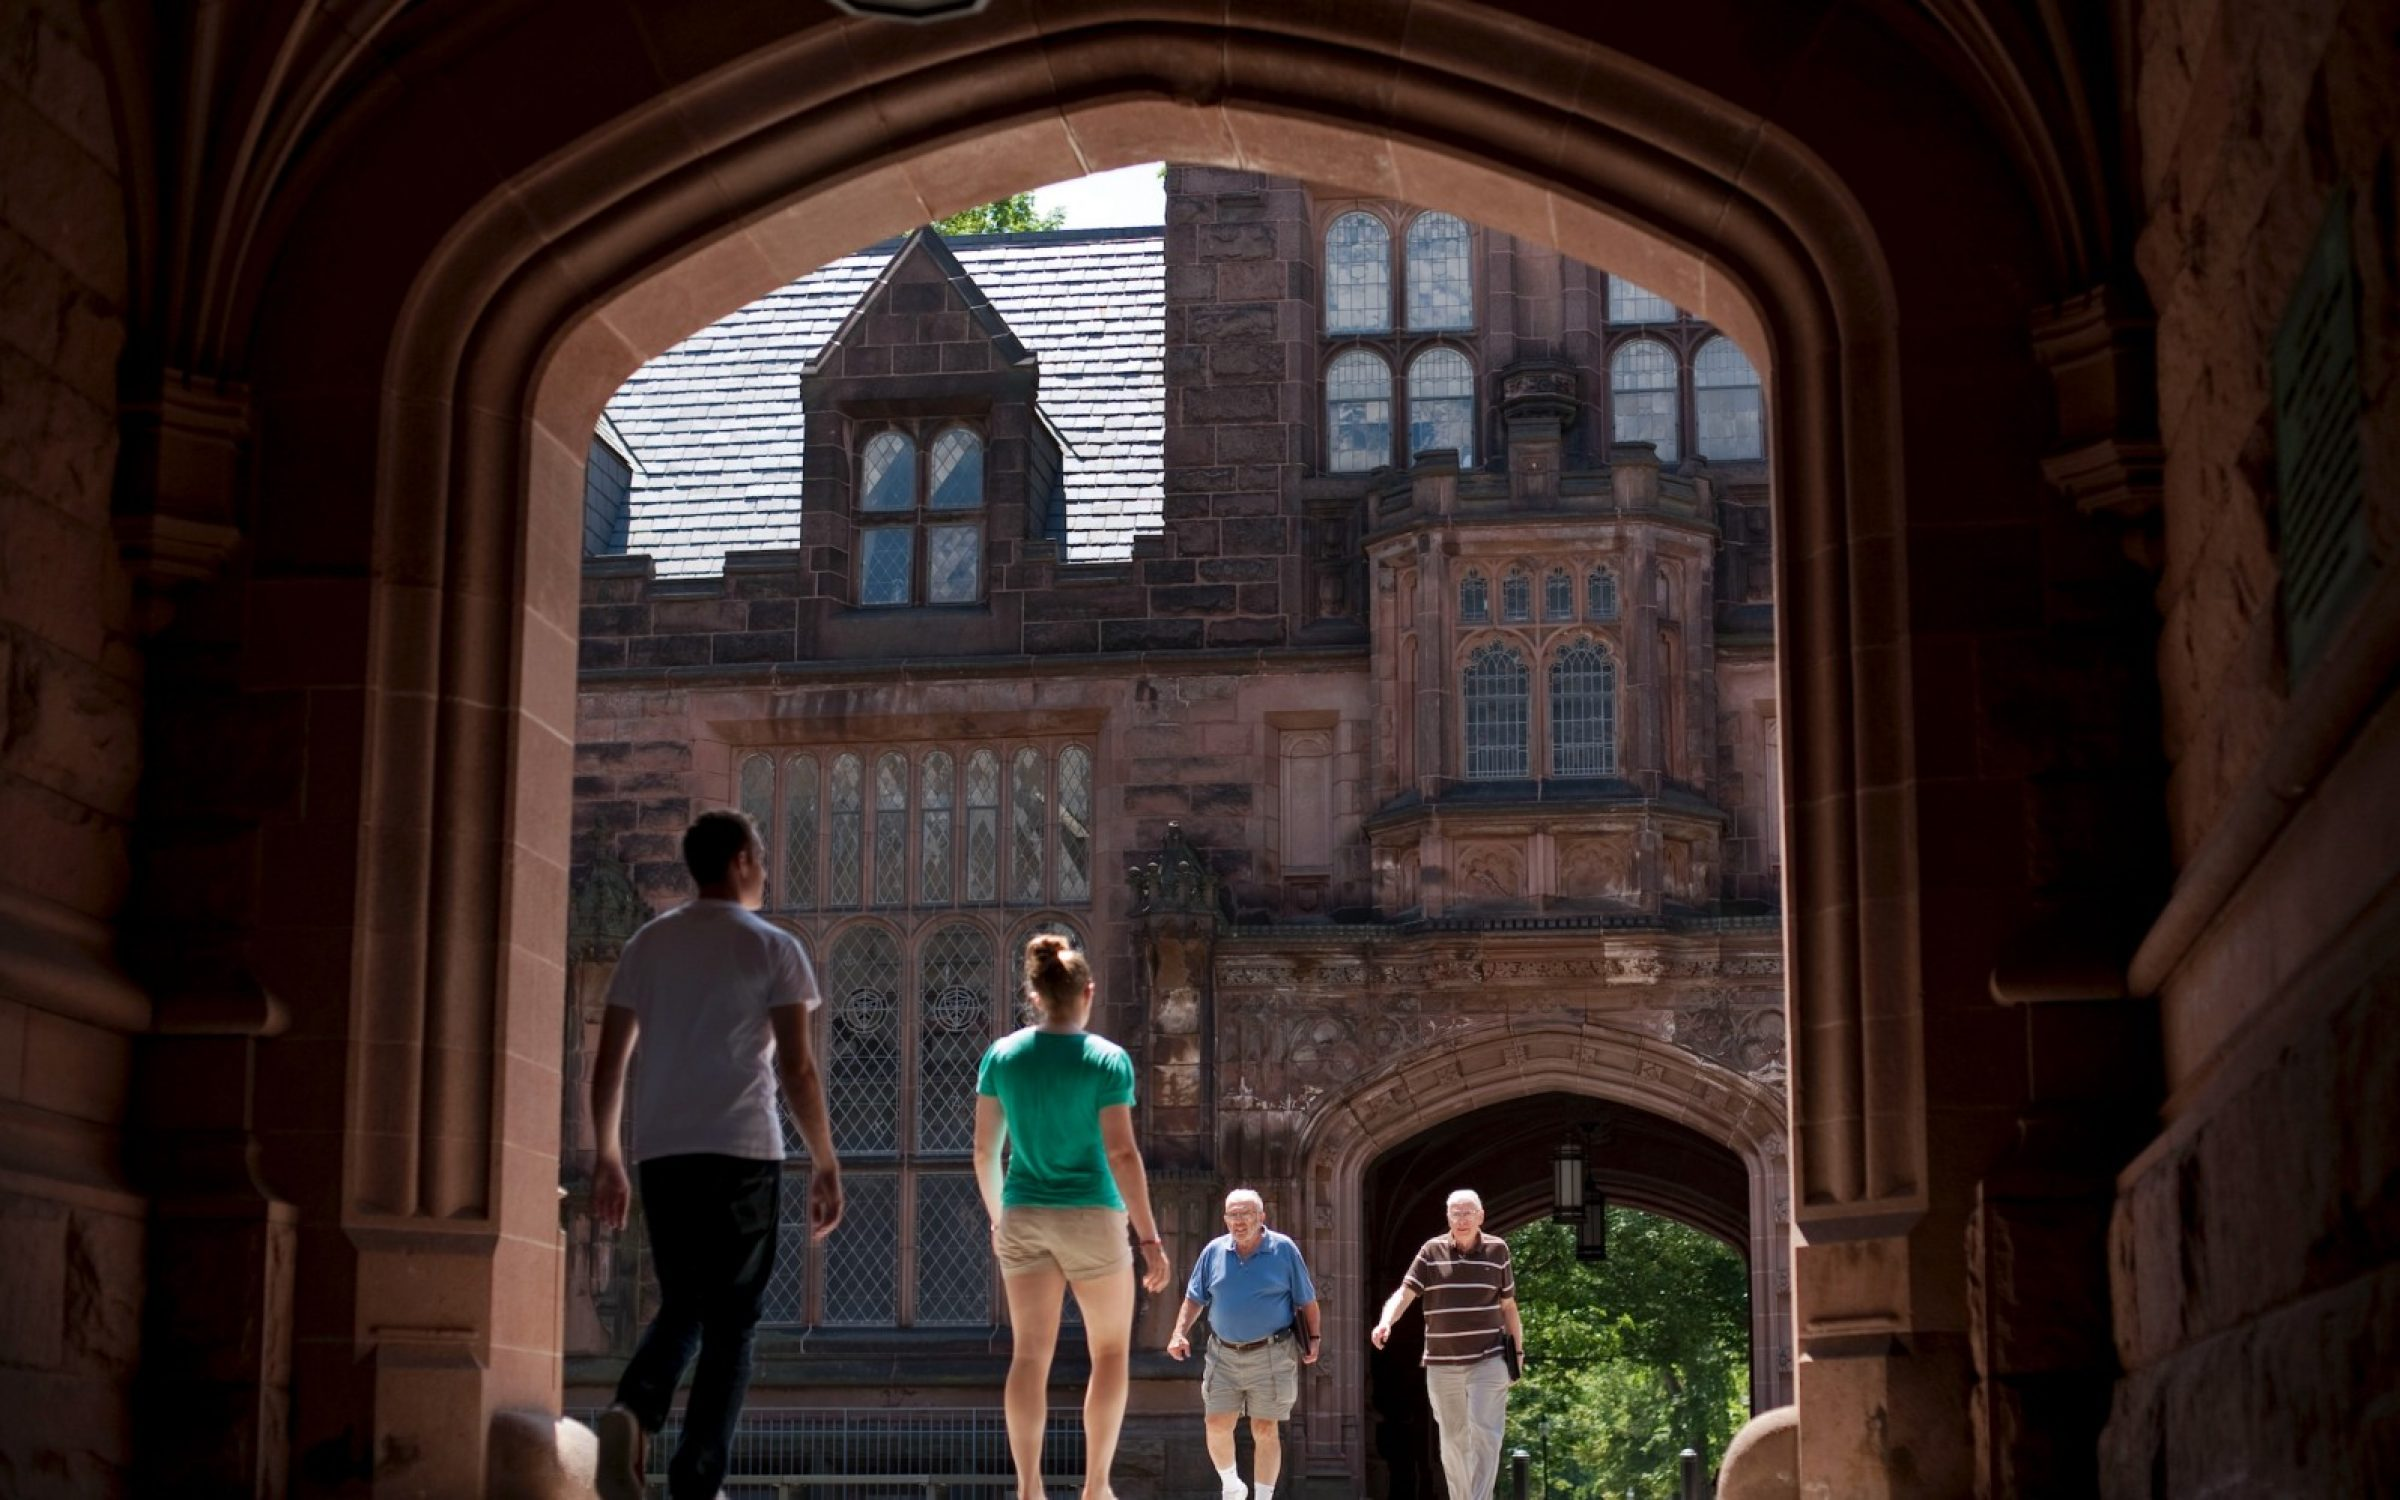 The quads at Princeton University, New Jersey, USA. Credit: Bloomberg / Getty Images.